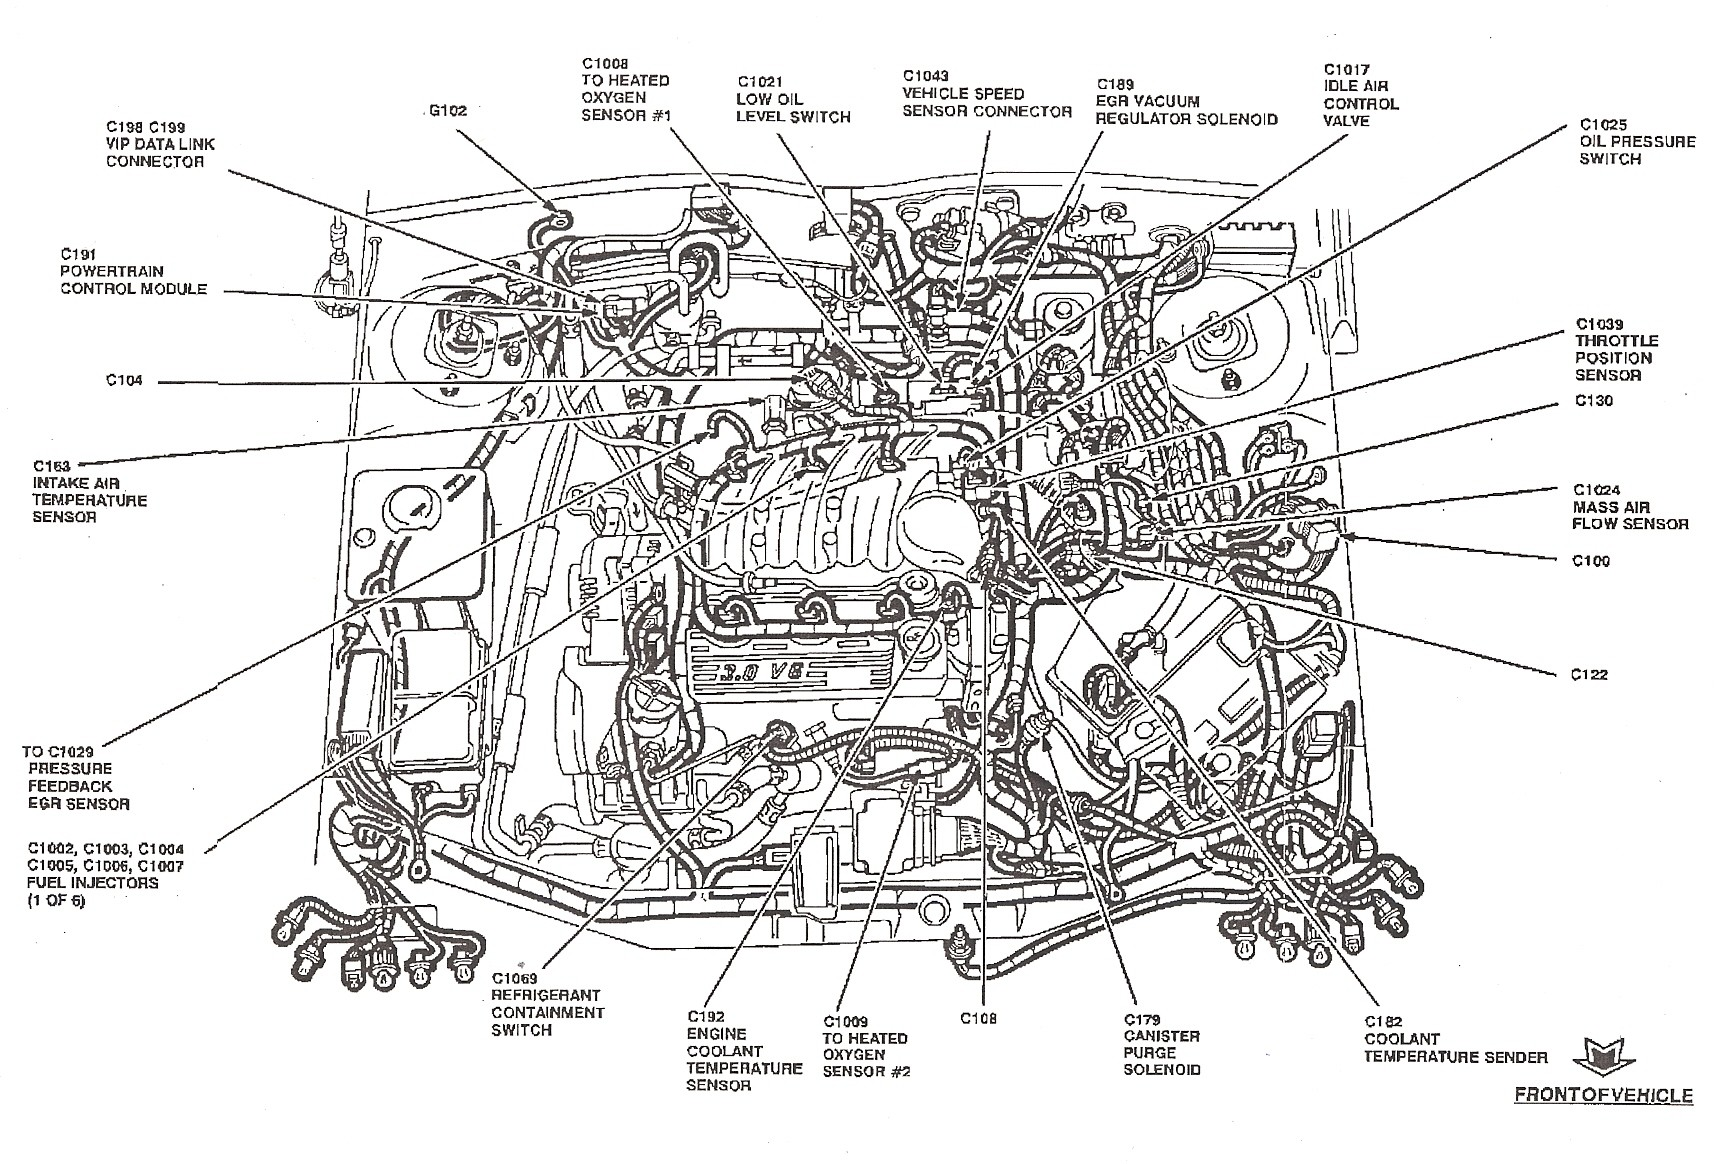 2002 Ford Focus Cooling System Diagram Explained Wiring Diagrams 2004 Engine 2001 Zetec Electrical Work